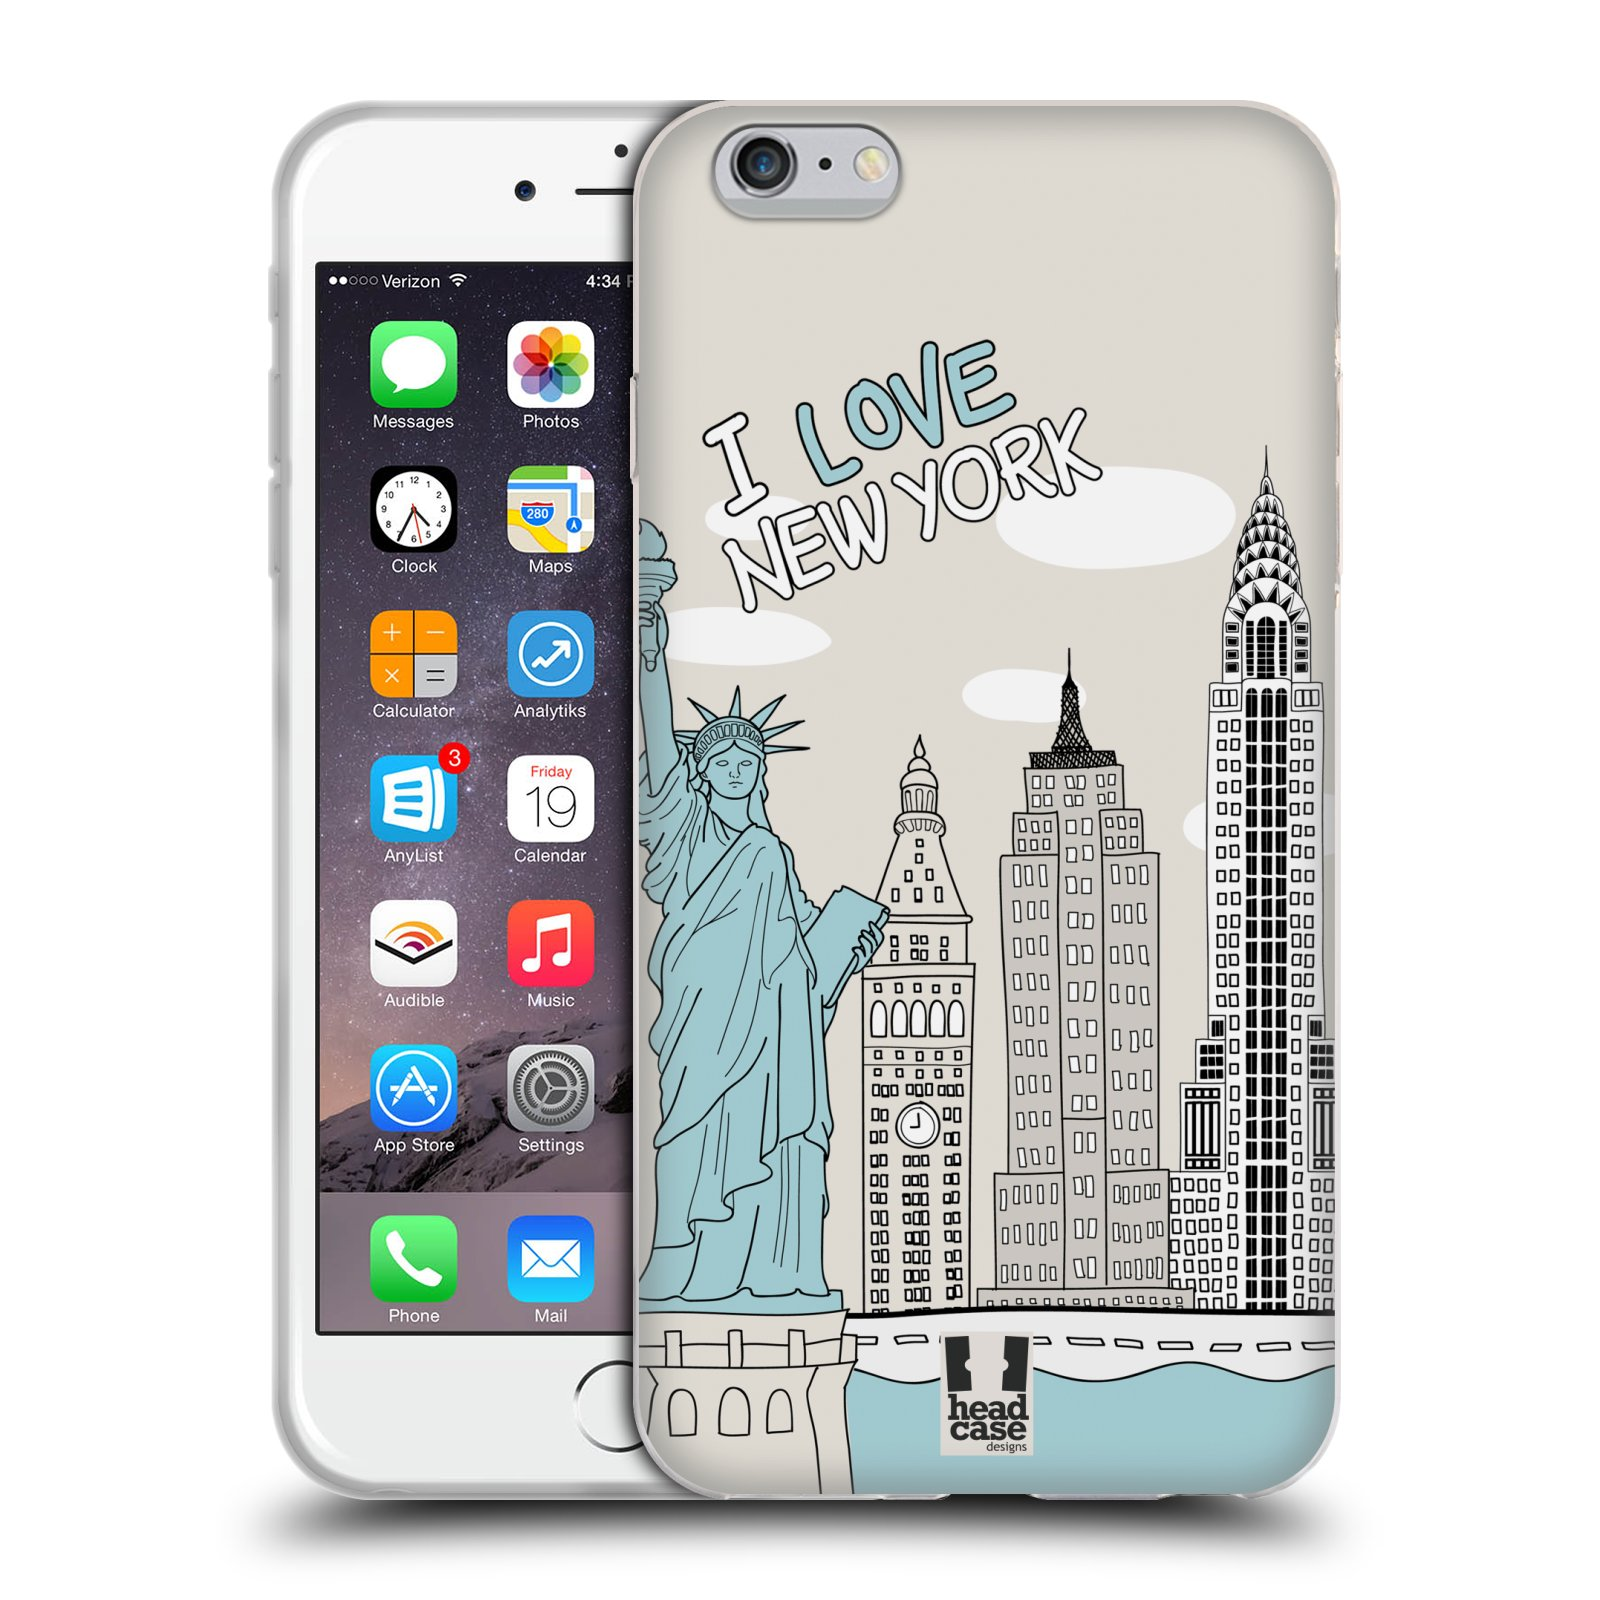 HEAD CASE silikonový obal na mobil Apple Iphone 6 PLUS/ 6S PLUS vzor Kreslená městečka MODRÁ, USA, New York, I LOVE NEW YORK